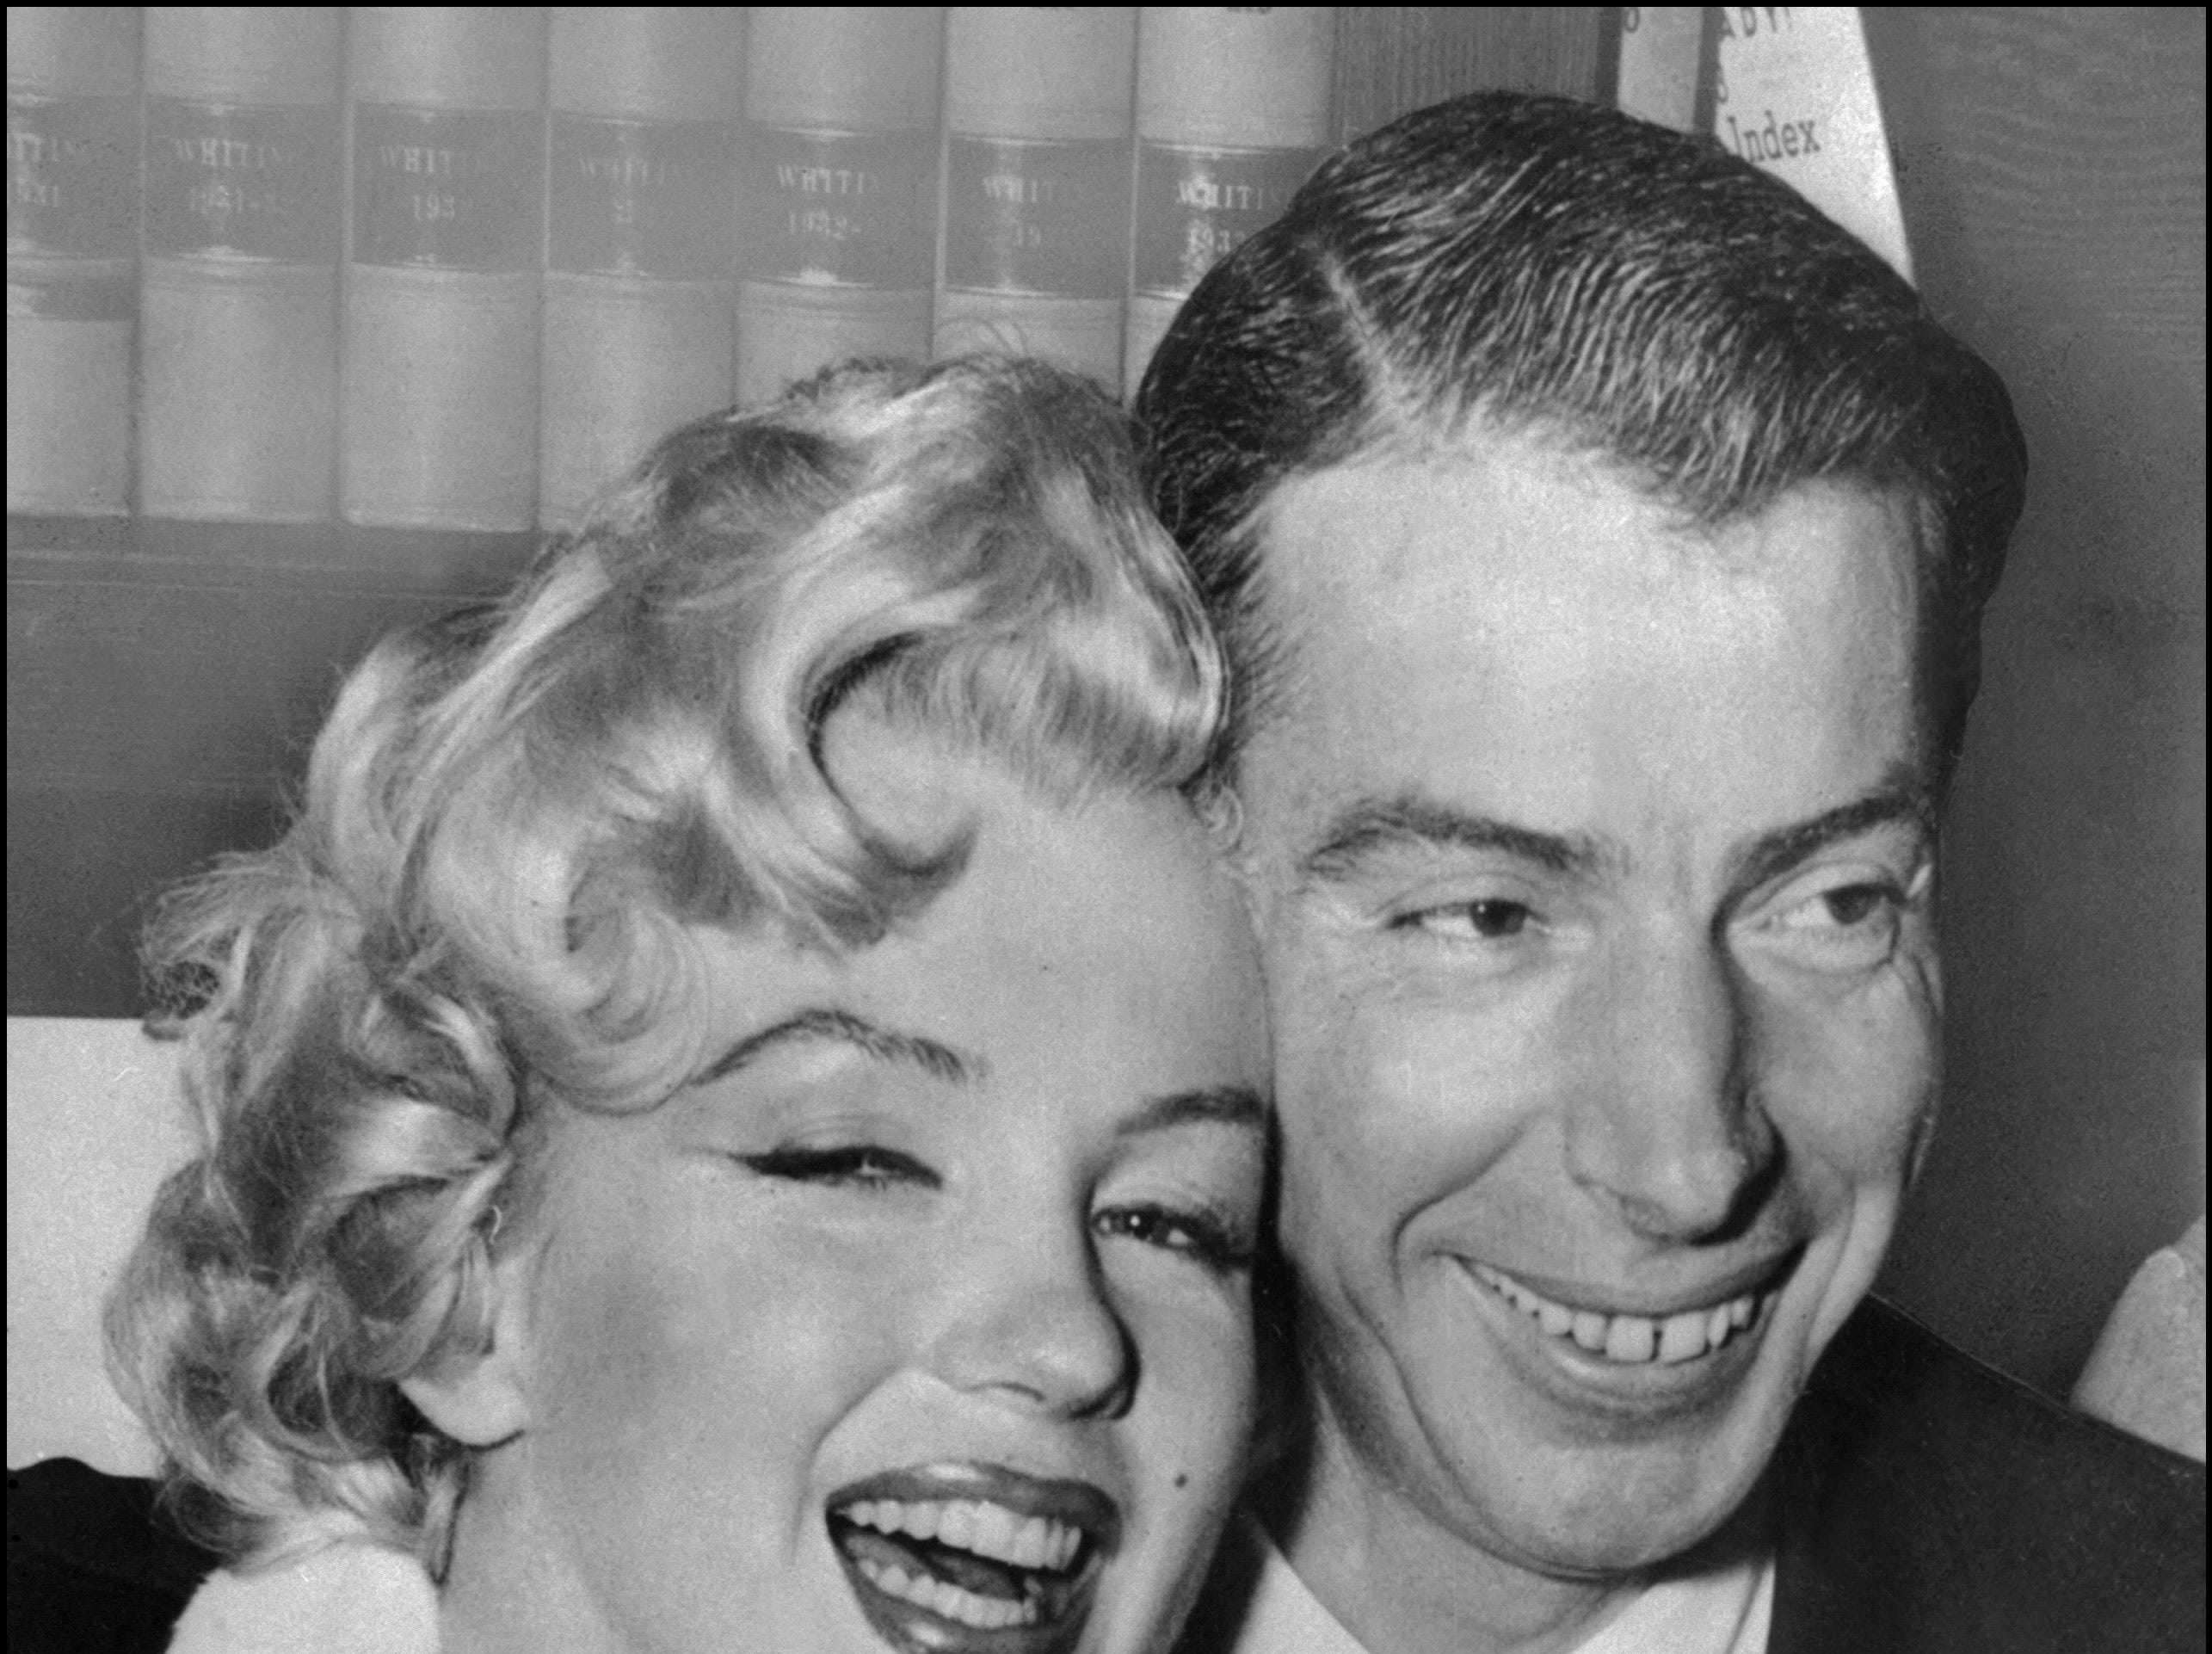 (FILE PHOTO) 14th January 2014 marks 60 years since iconic American actress Marilyn Monroe married American Baseball player Joe DiMaggio in San Francisco on January 14, 1954. DiMaggio and Monroe were divorced in October 1954, just 274 days after they were married, with the actress citing mental cruelty in the divorce petition.   SAN FRANCISCO, UNITED STATES:  Picture dated 01 April 1954 showing American actress Marilyn Monroe (L) with her husband baseball legend Joe DiMaggio during their wedding ceremony at San Francisco City hall. (Photo credit should read AFP/AFP/Getty Images) ORG XMIT: 156616713 ORIG FILE ID: 51656364